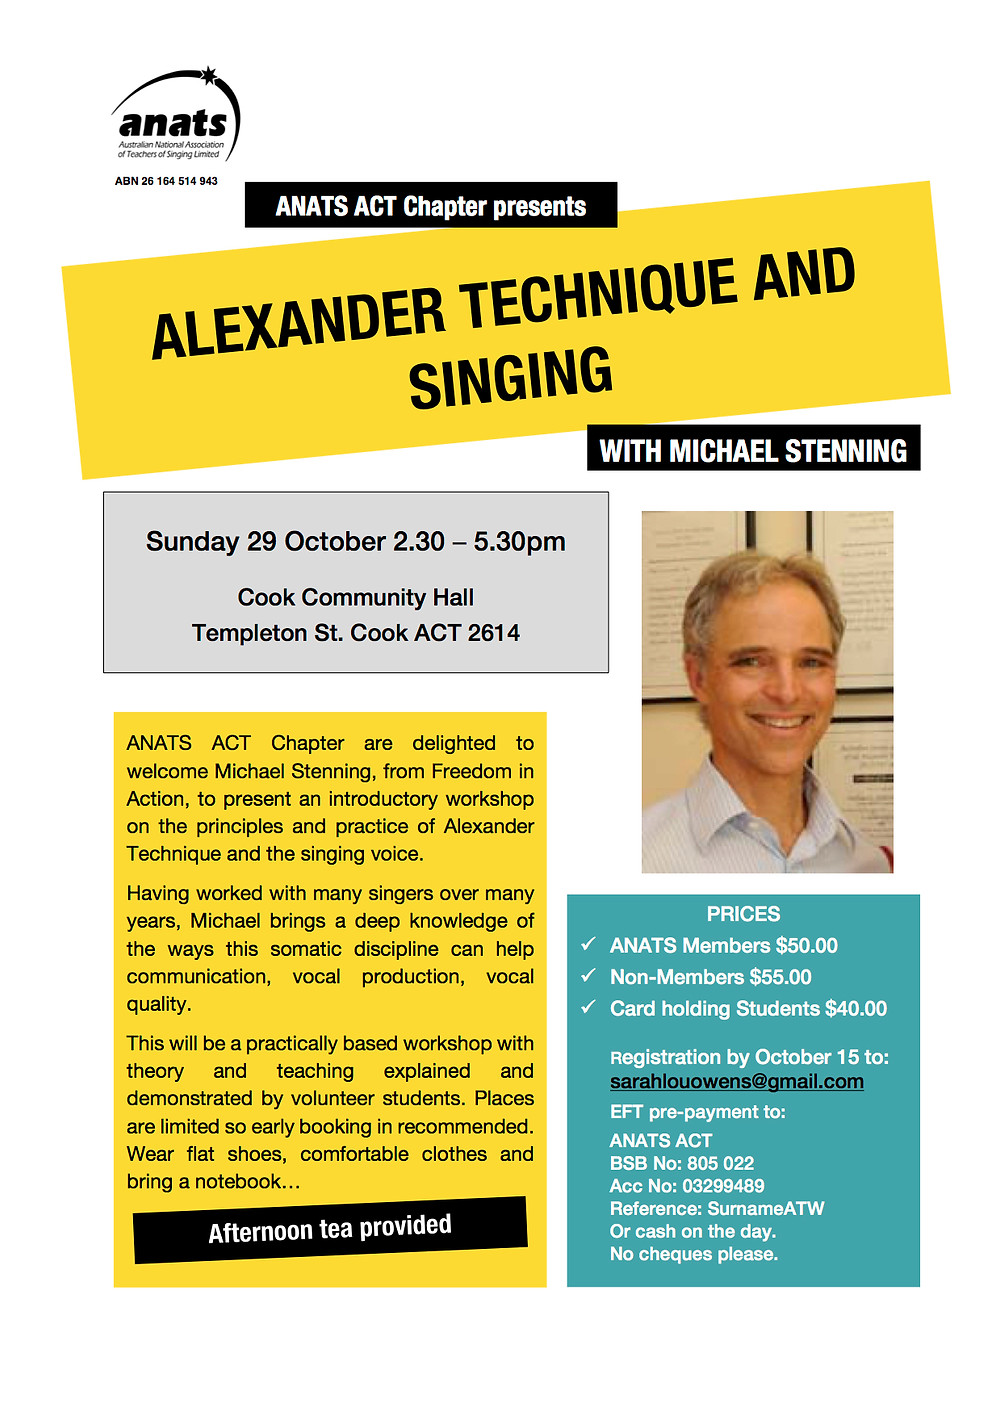 Come and join Alexander Technique teacher Michael Stenning to explore the benefits this somatic discipline has on the singing voice. Sunday 29 October 2.30 – 5.30pm  Cook Community Hall Templeton St. Cook ACT 2614 Registration by October 15 to:  sarahlouowens@gmail.com EFT pre-payment to: ANATS ACT BSB No: 805 022   Acc No: 03299489 Reference: SurnameATW or cash on the day.  No cheques please.